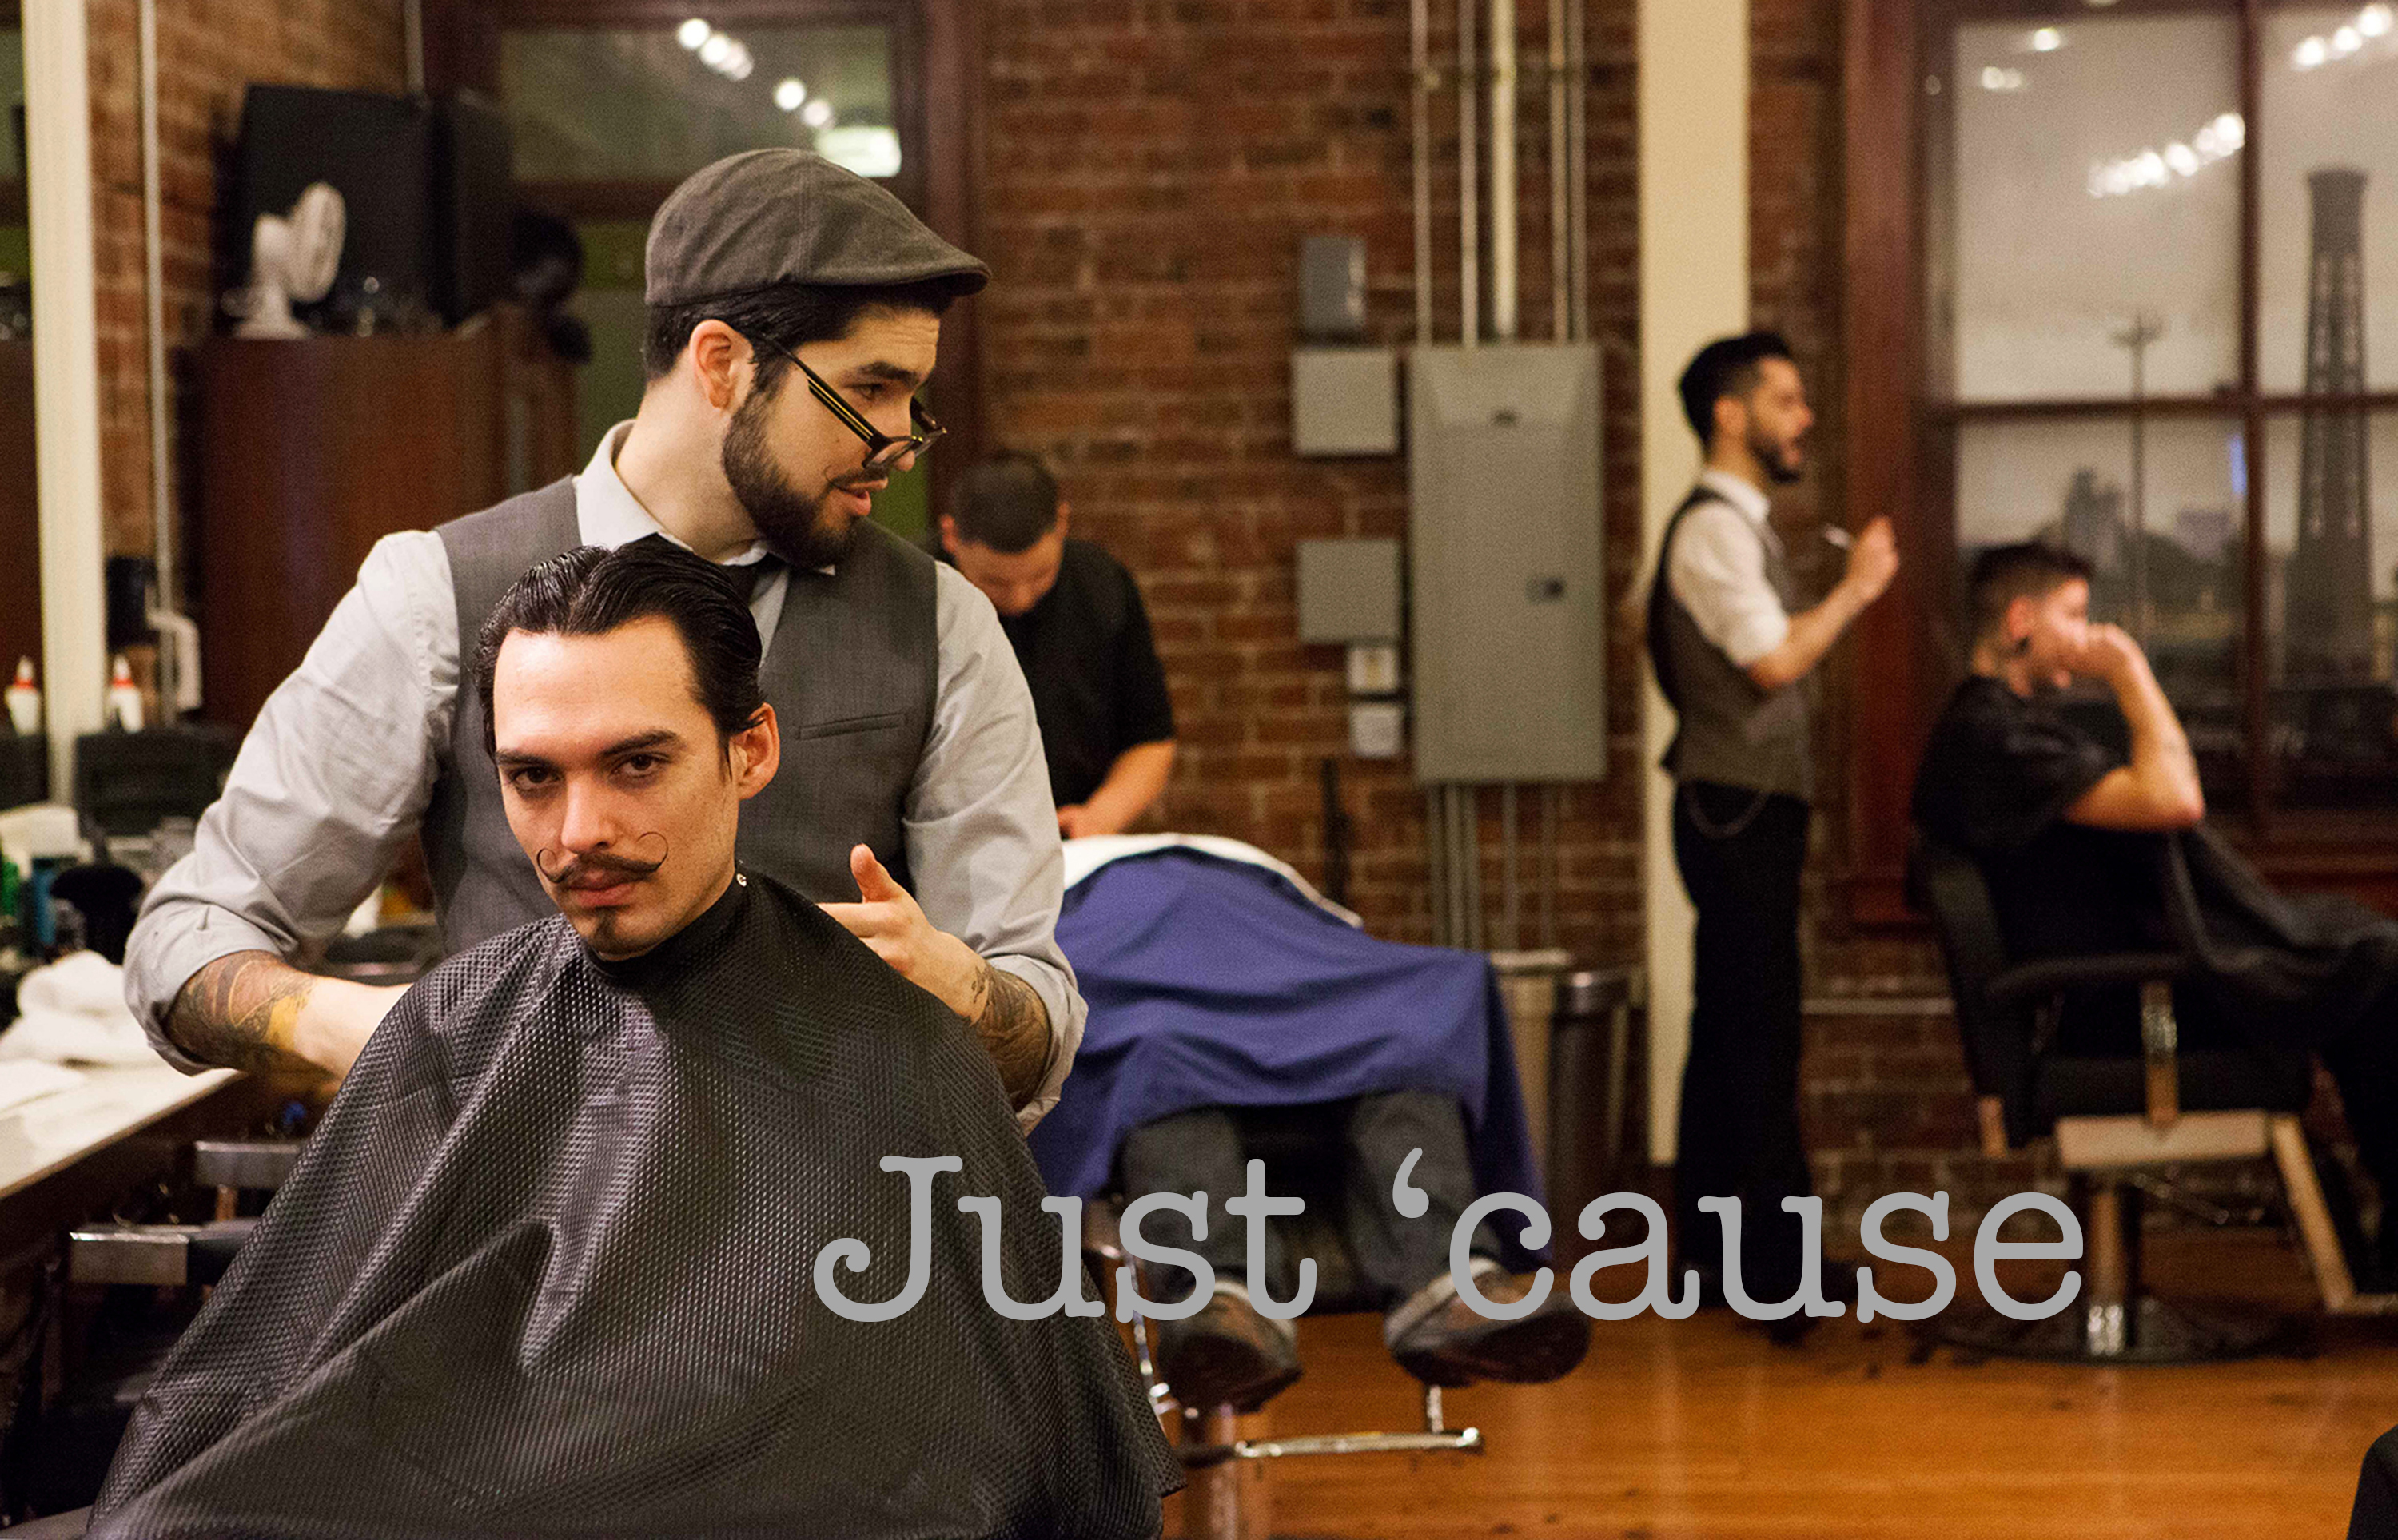 Jerry_Rawlings_The Barber Shop text